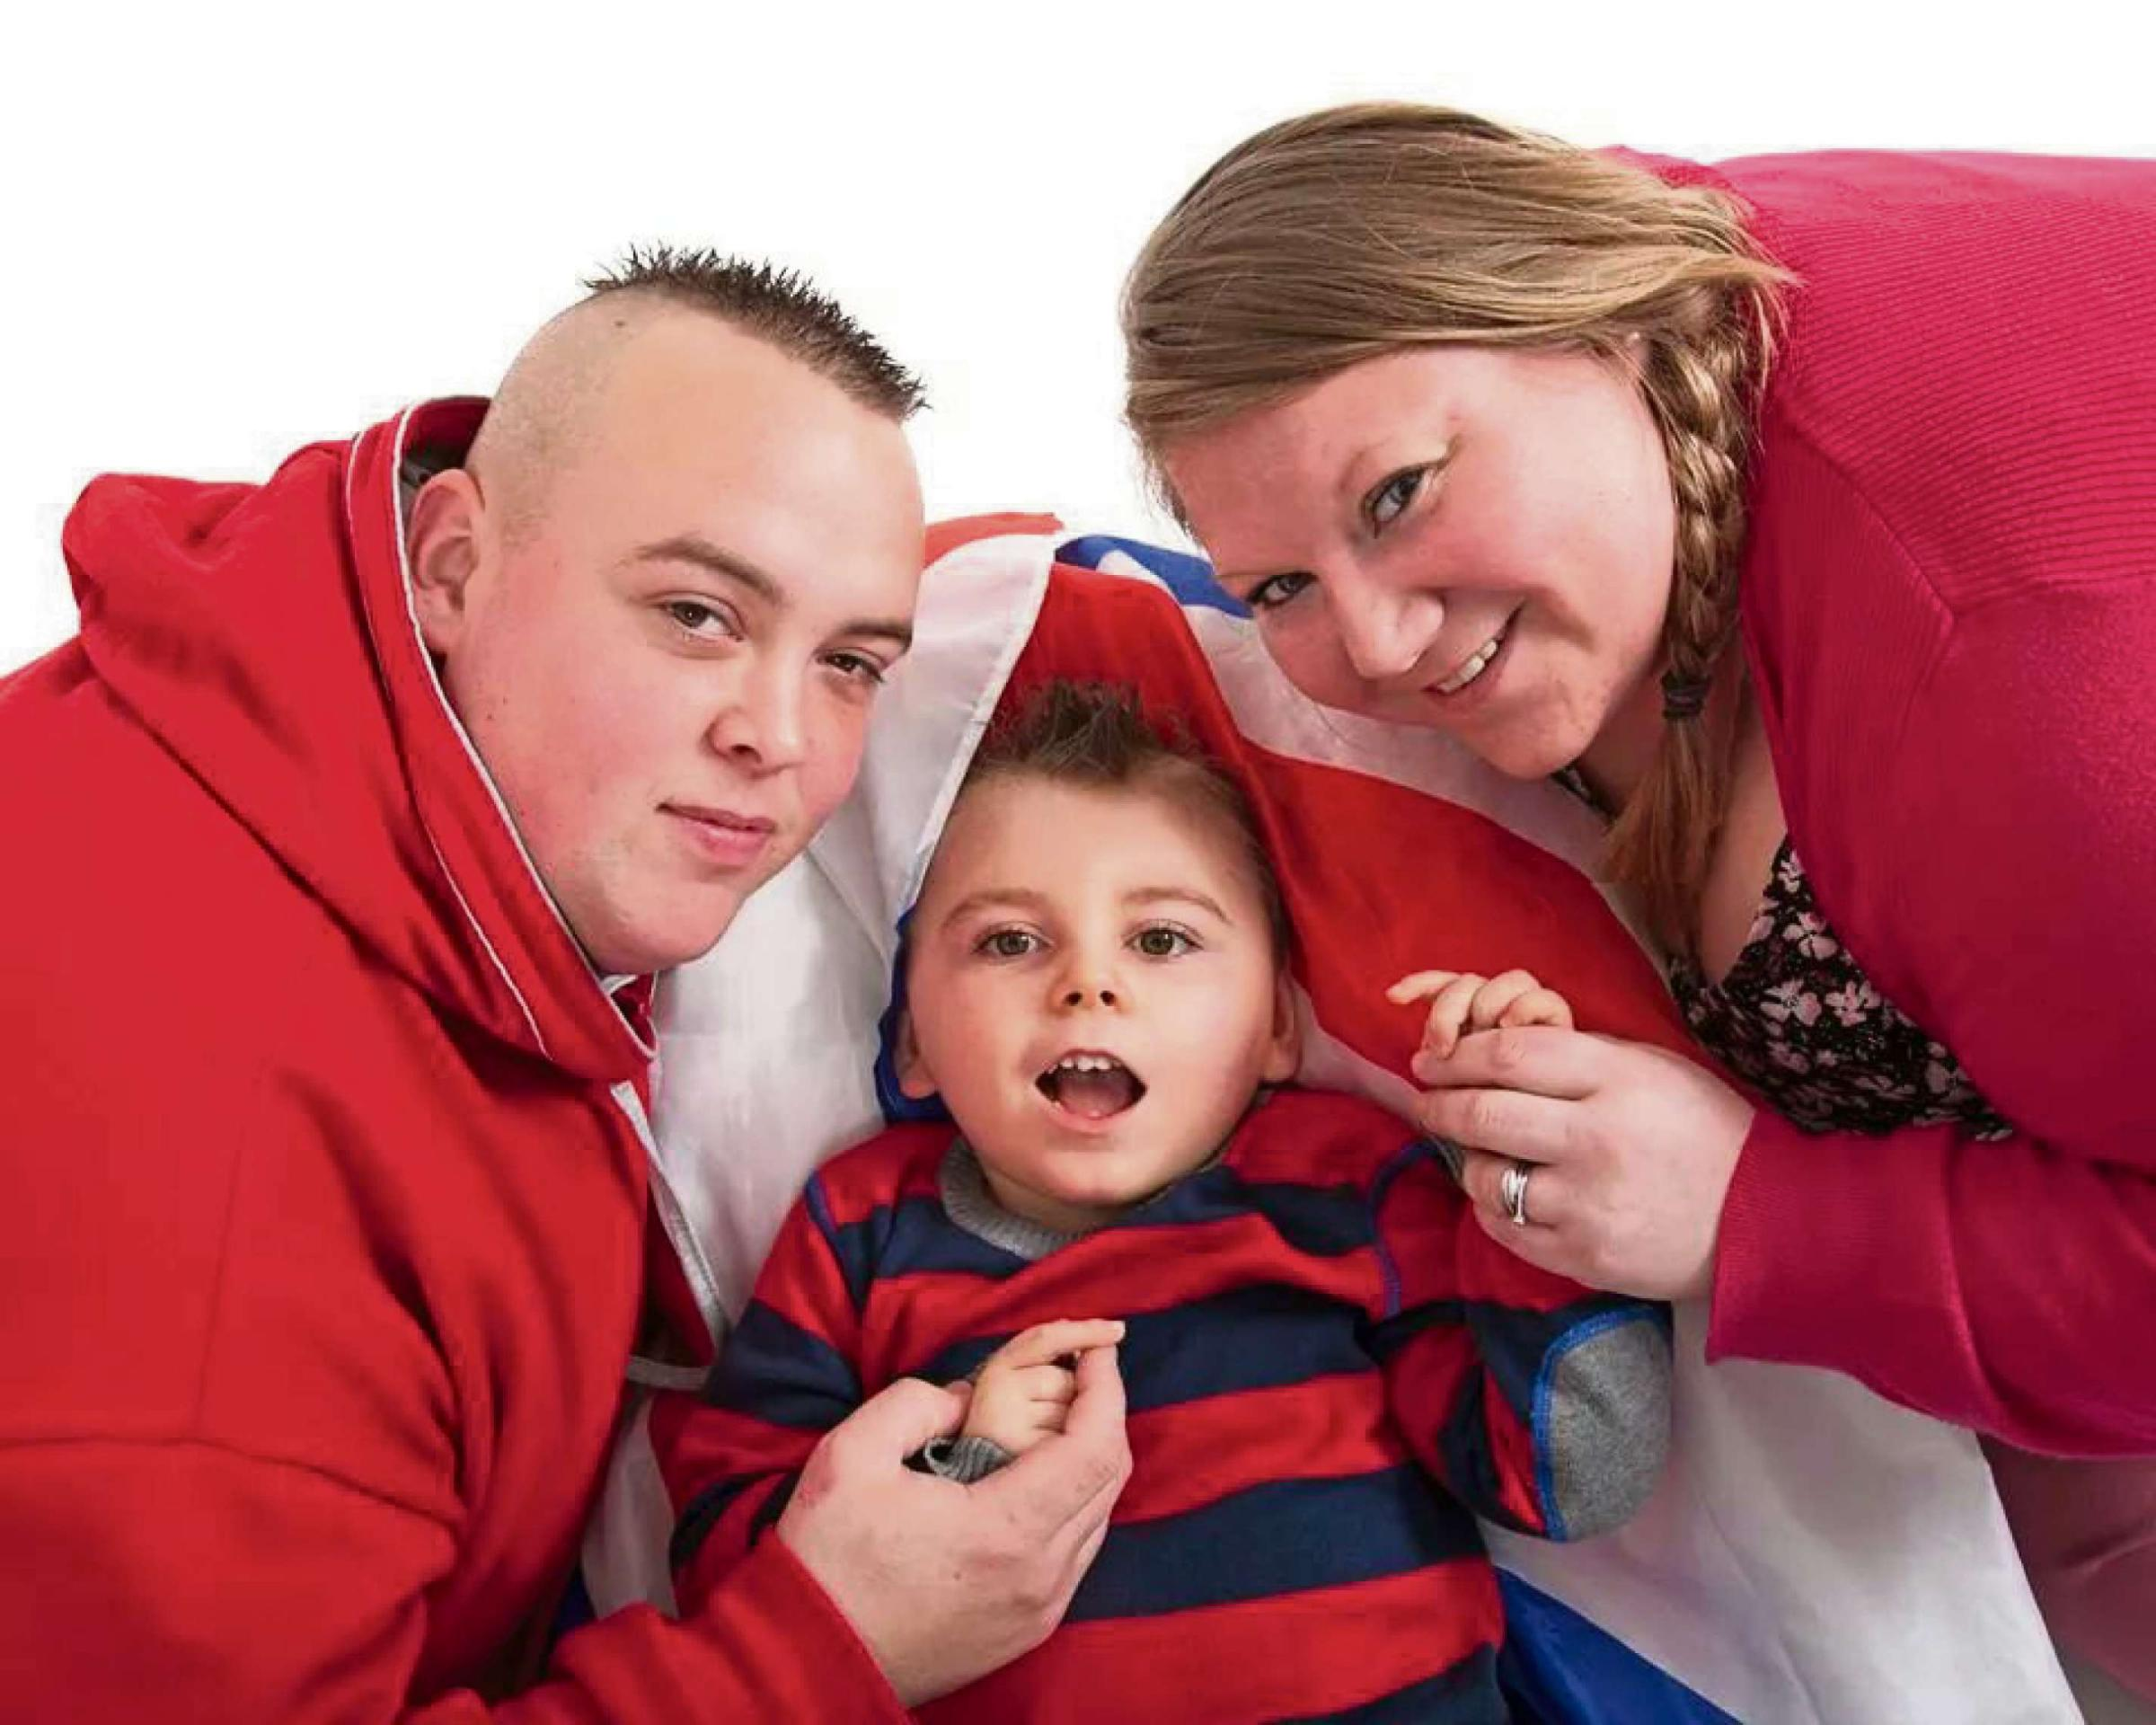 Samuel Wheatley-Hunt with his parents Darren and Natasha.